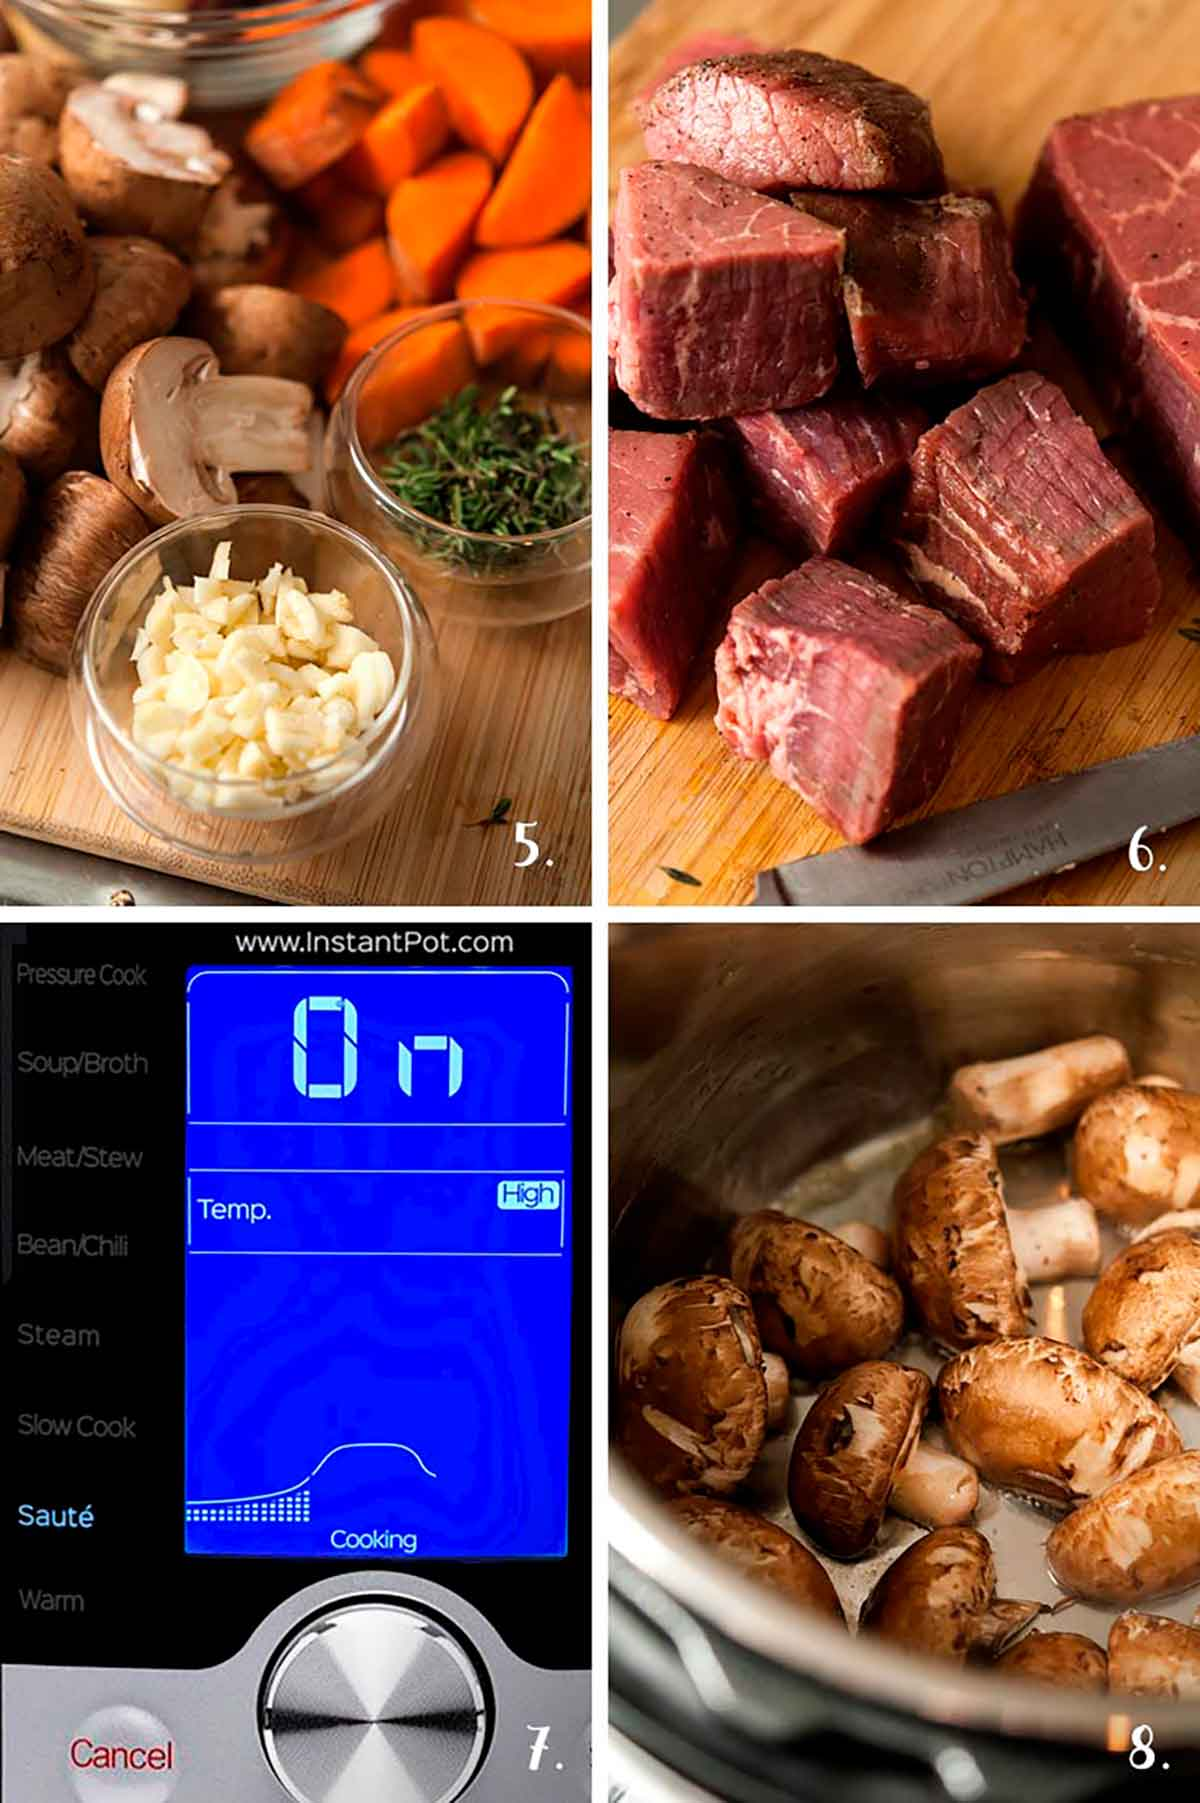 A collage of 4 numbered images showing minced garlic and thyme, cut meat, cooking mushrooms and Instant Pot directions.